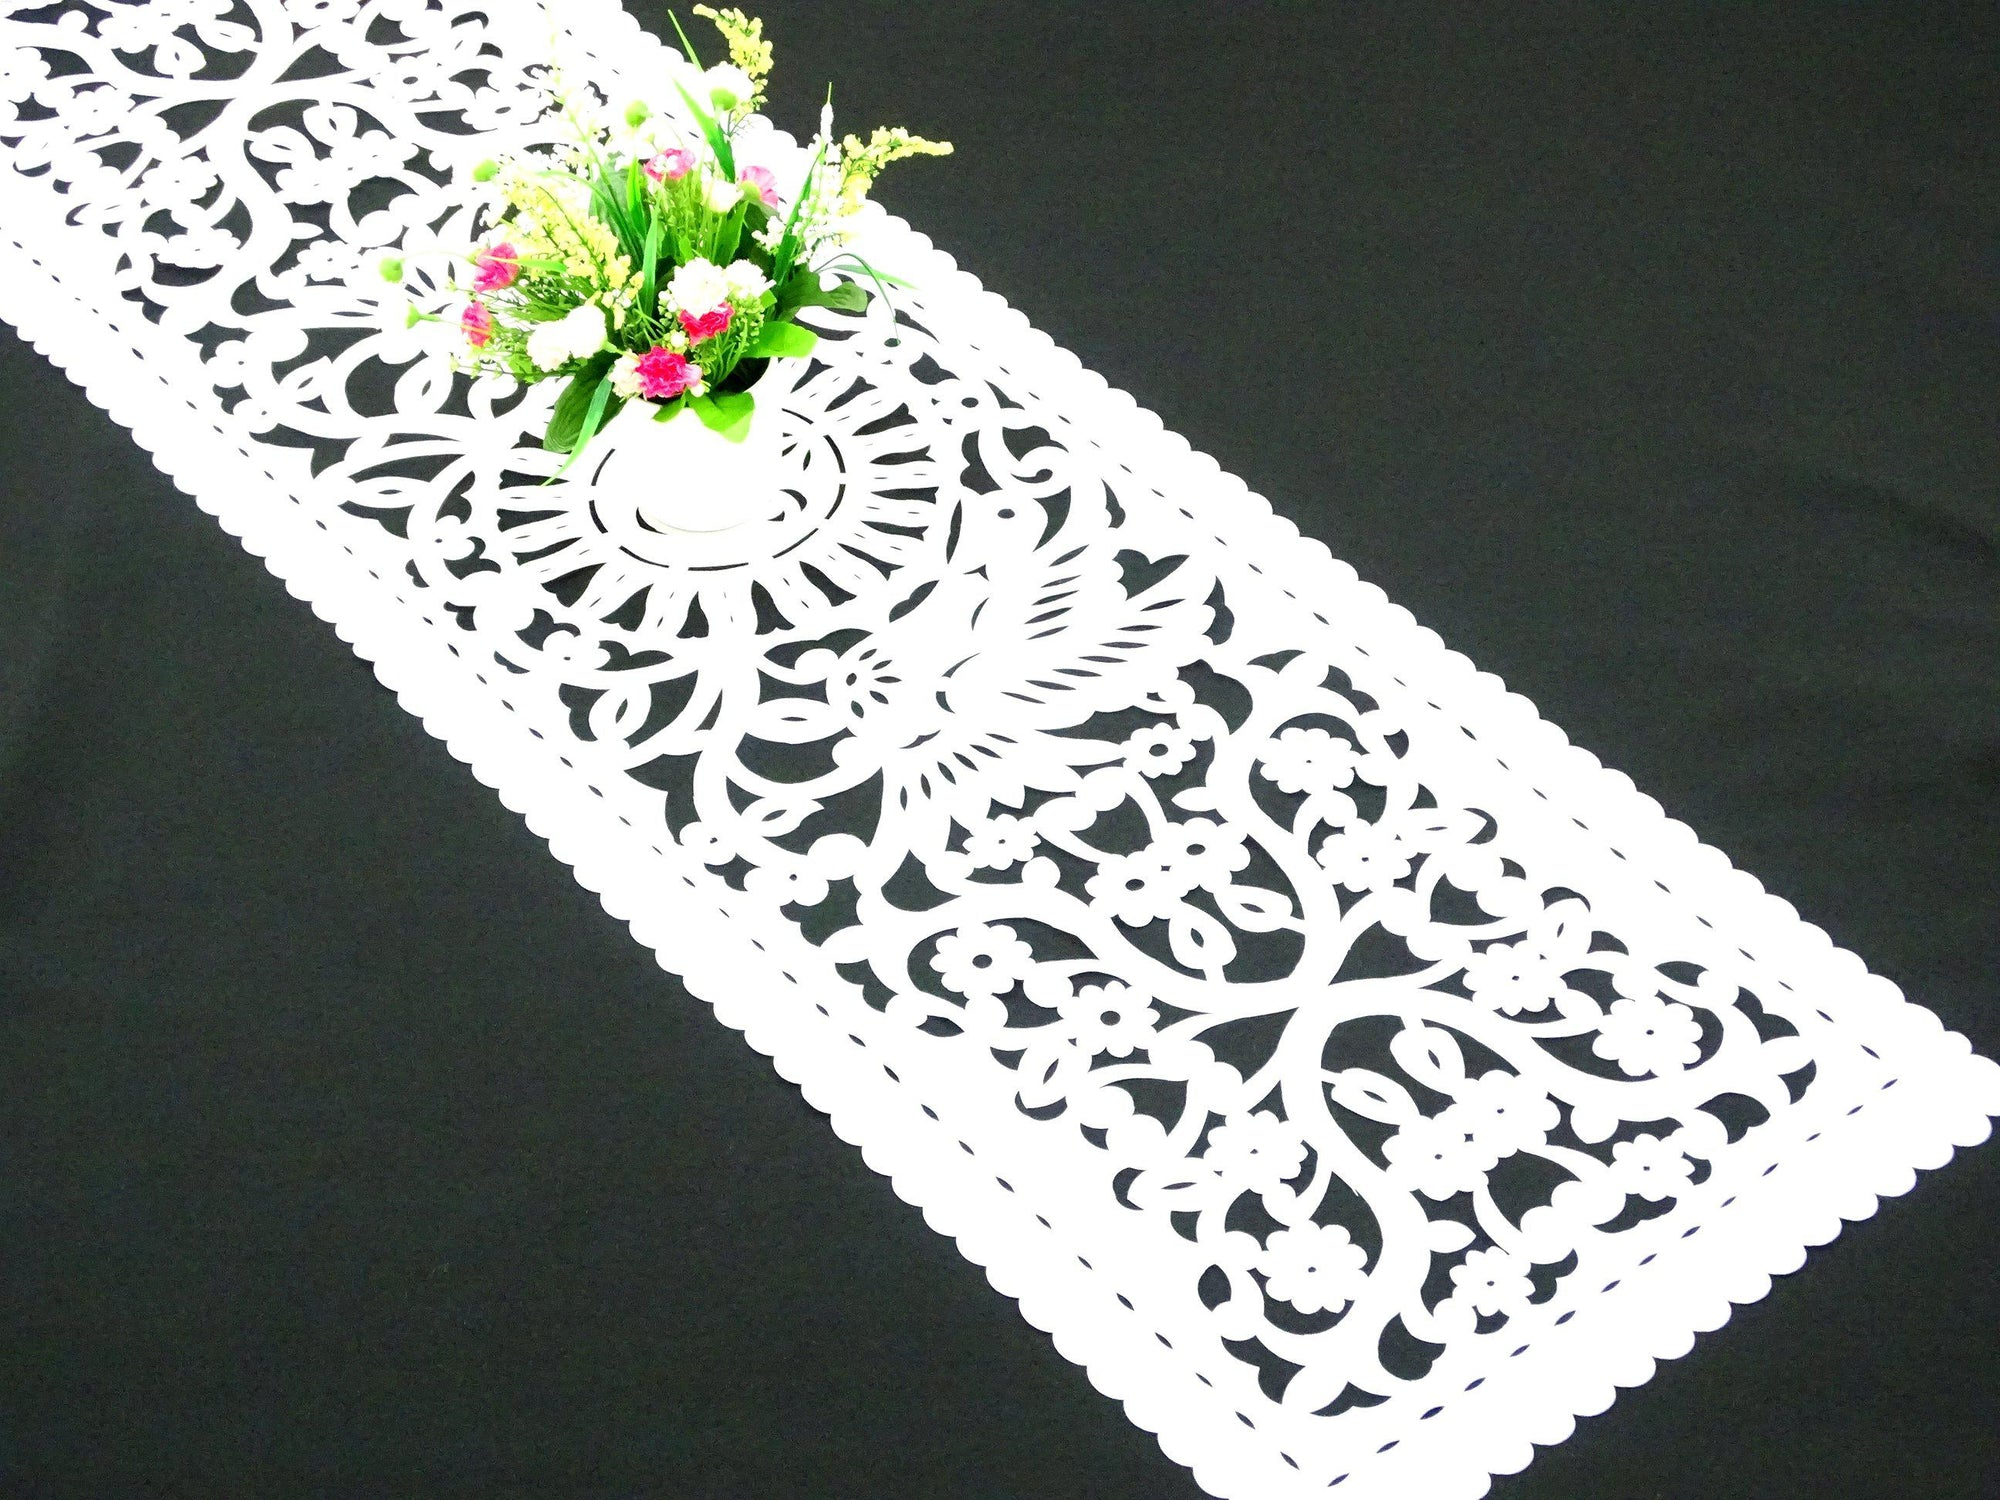 Mexican wedding, papel picado table runner, WHITE synthetic fabric, fiesta decorations, Cinco de Mayo party supplies, lace look table runner, FTR7